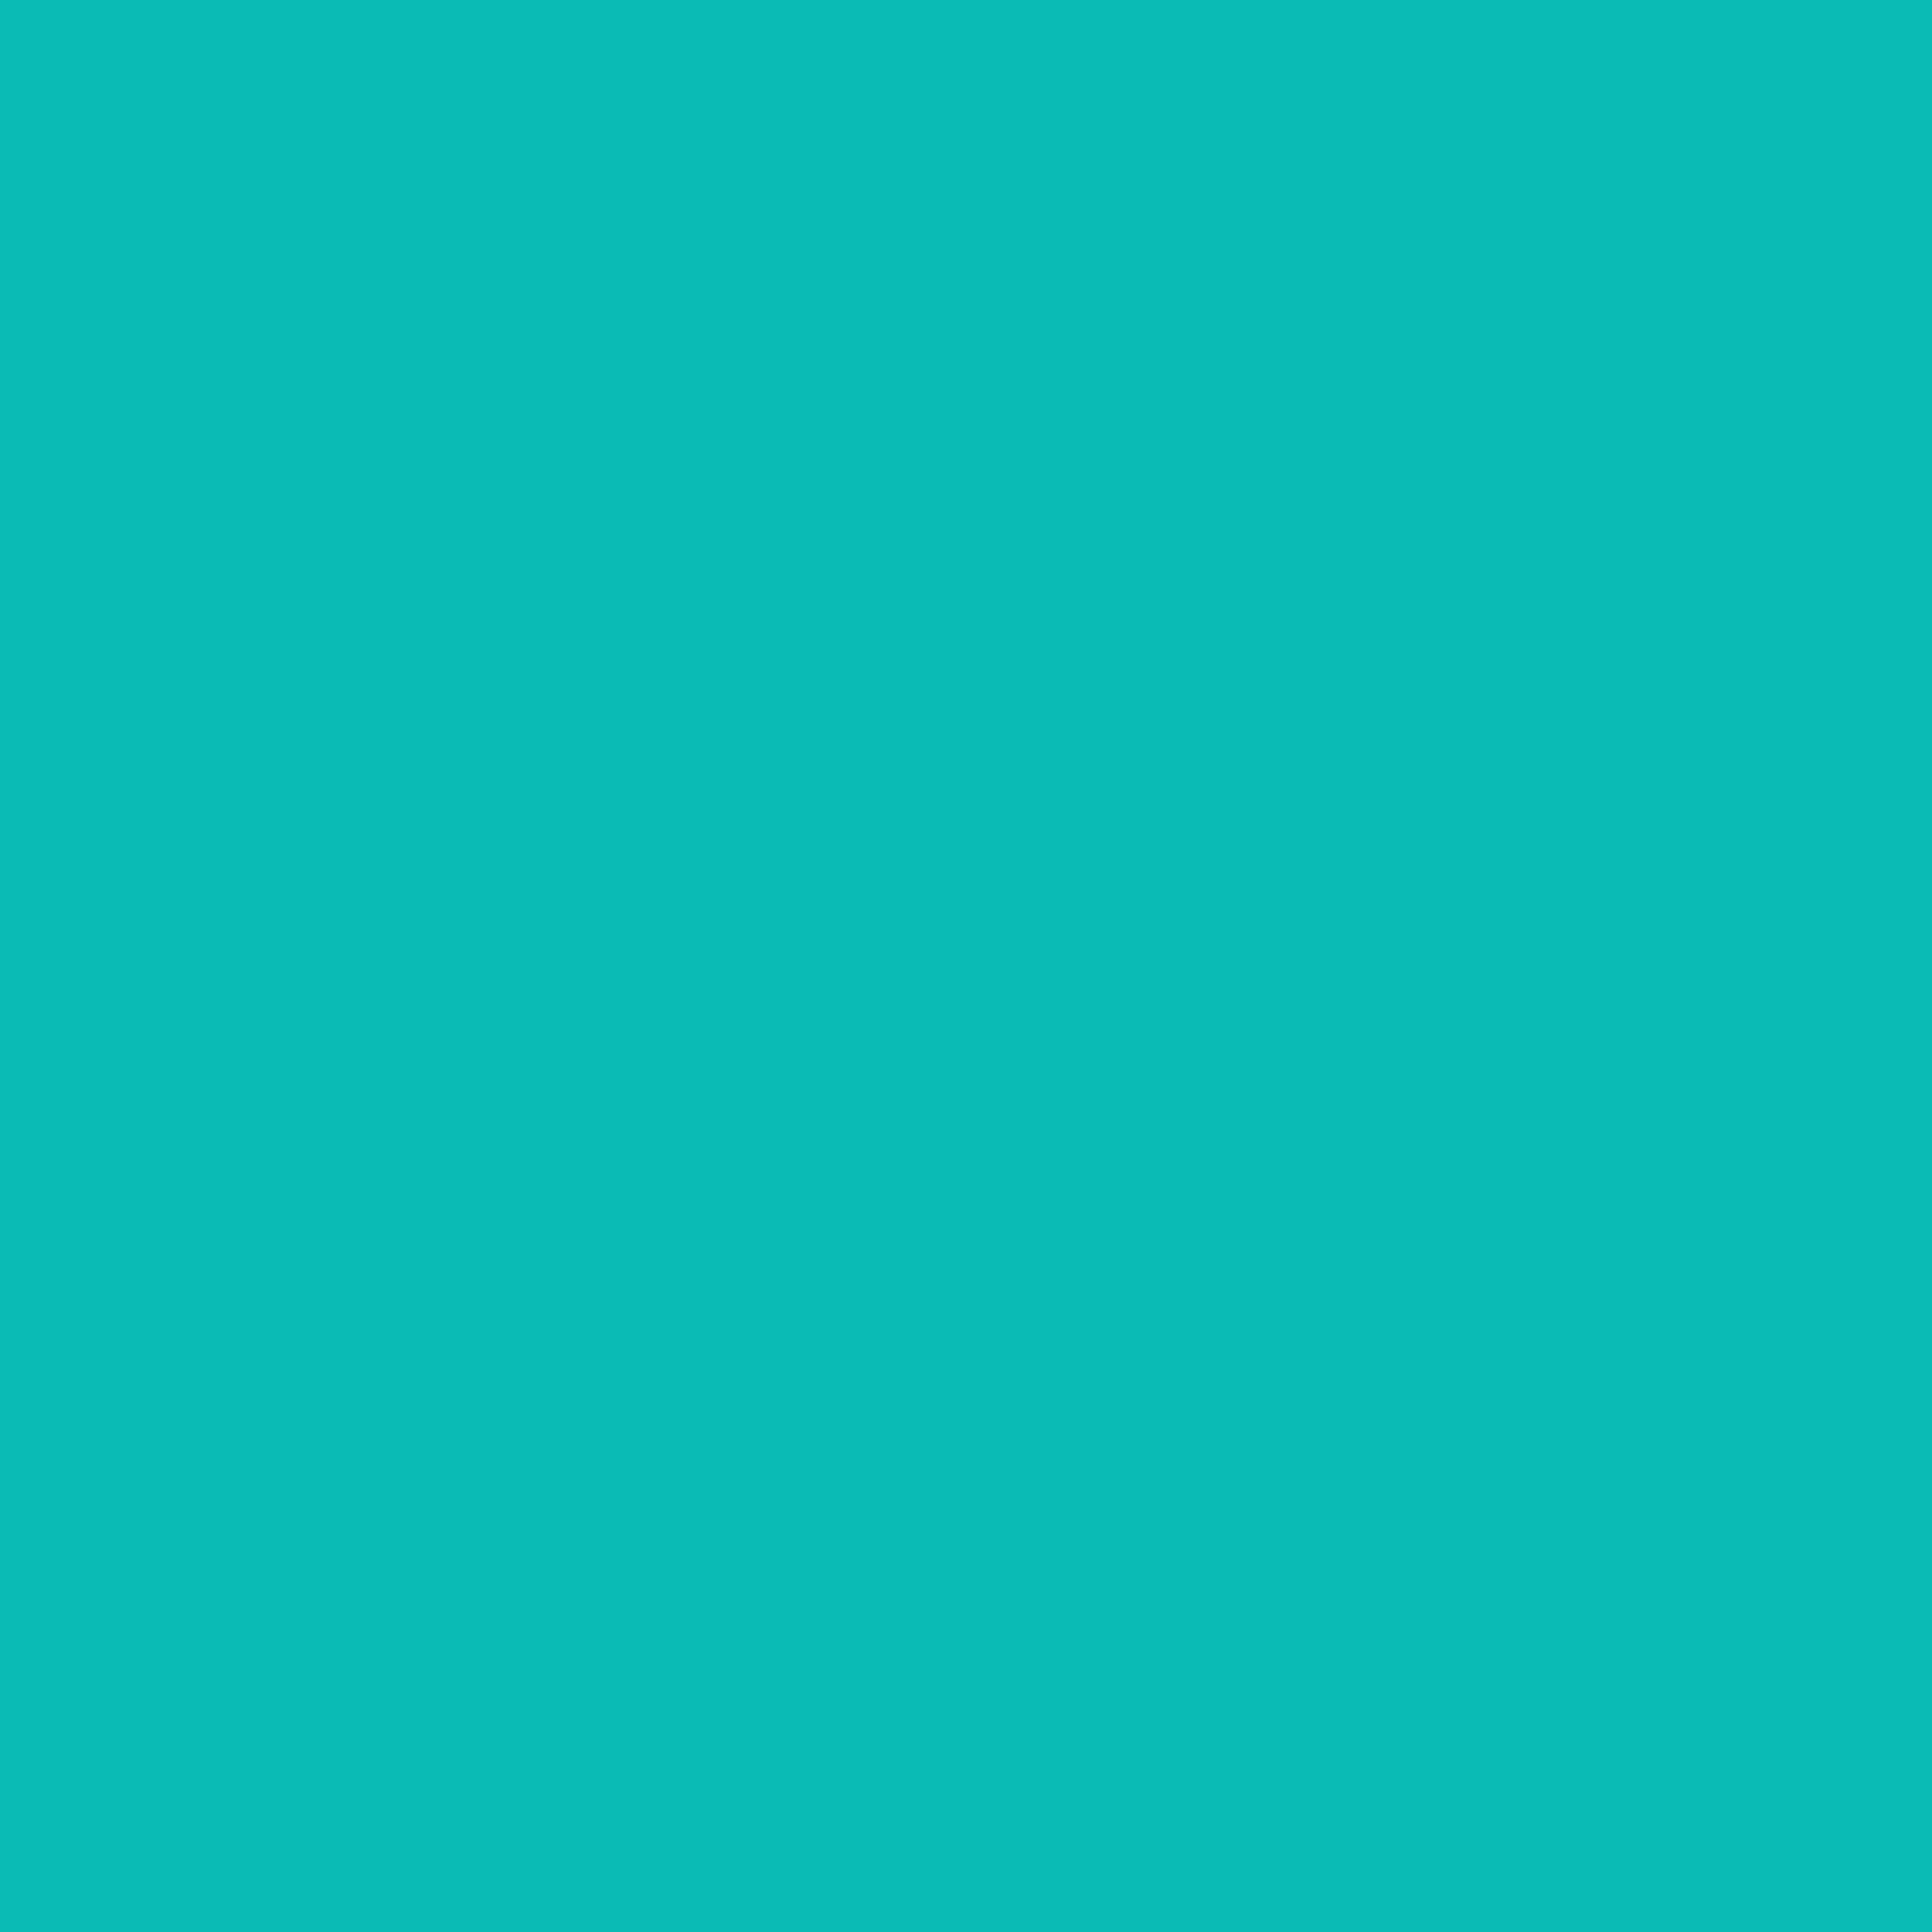 3600x3600 Tiffany Blue Solid Color Background